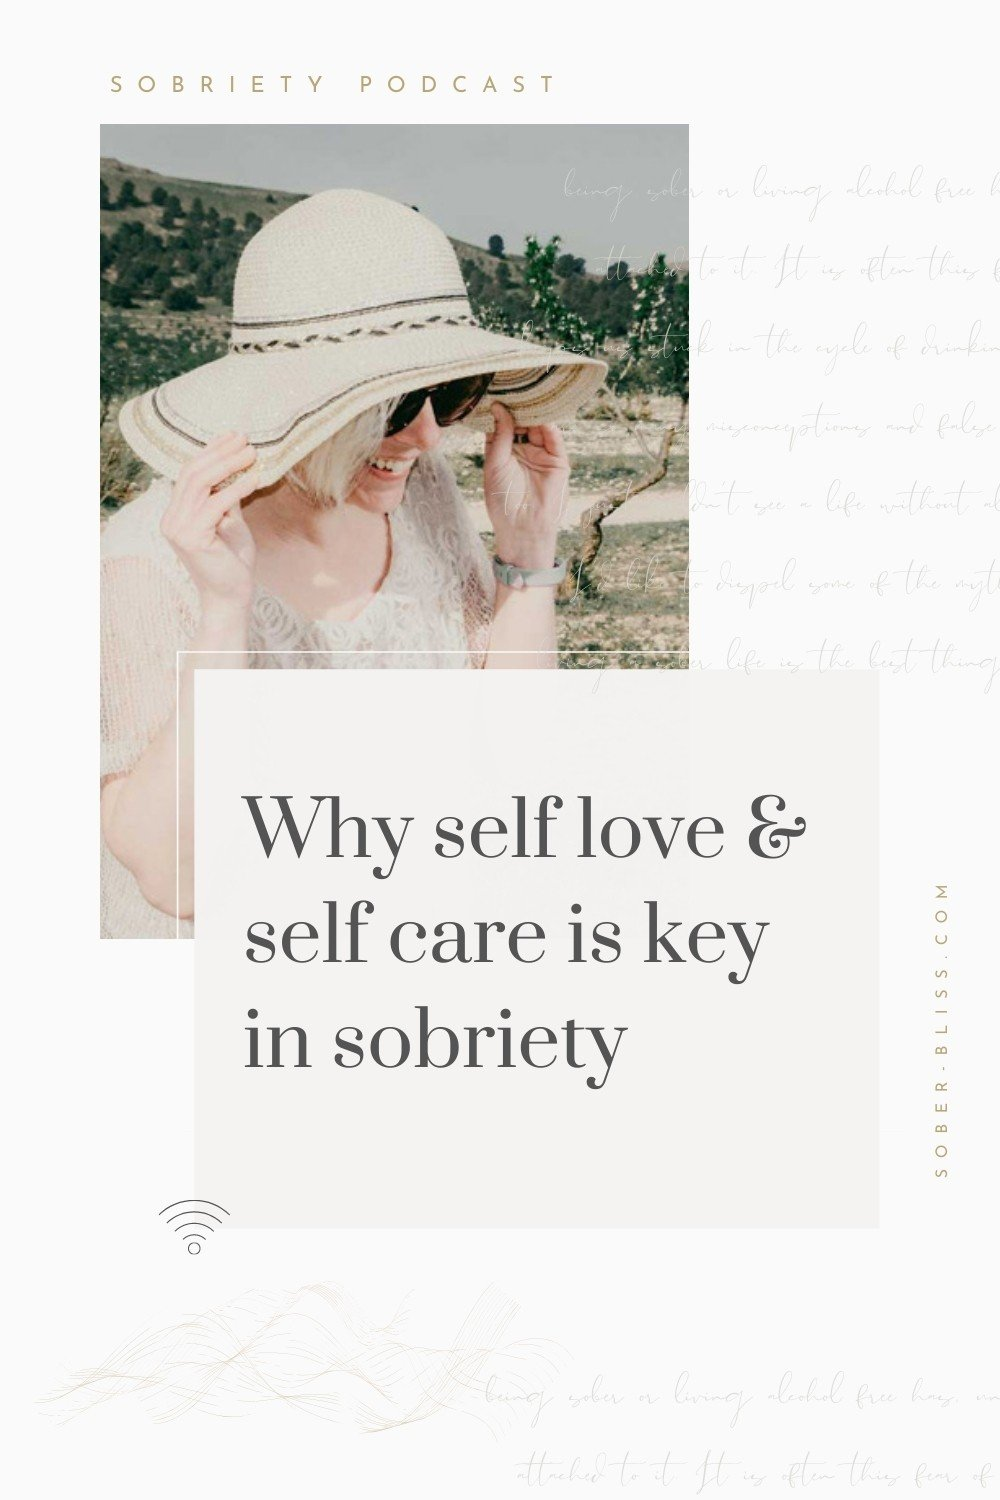 self care is key in sobriety